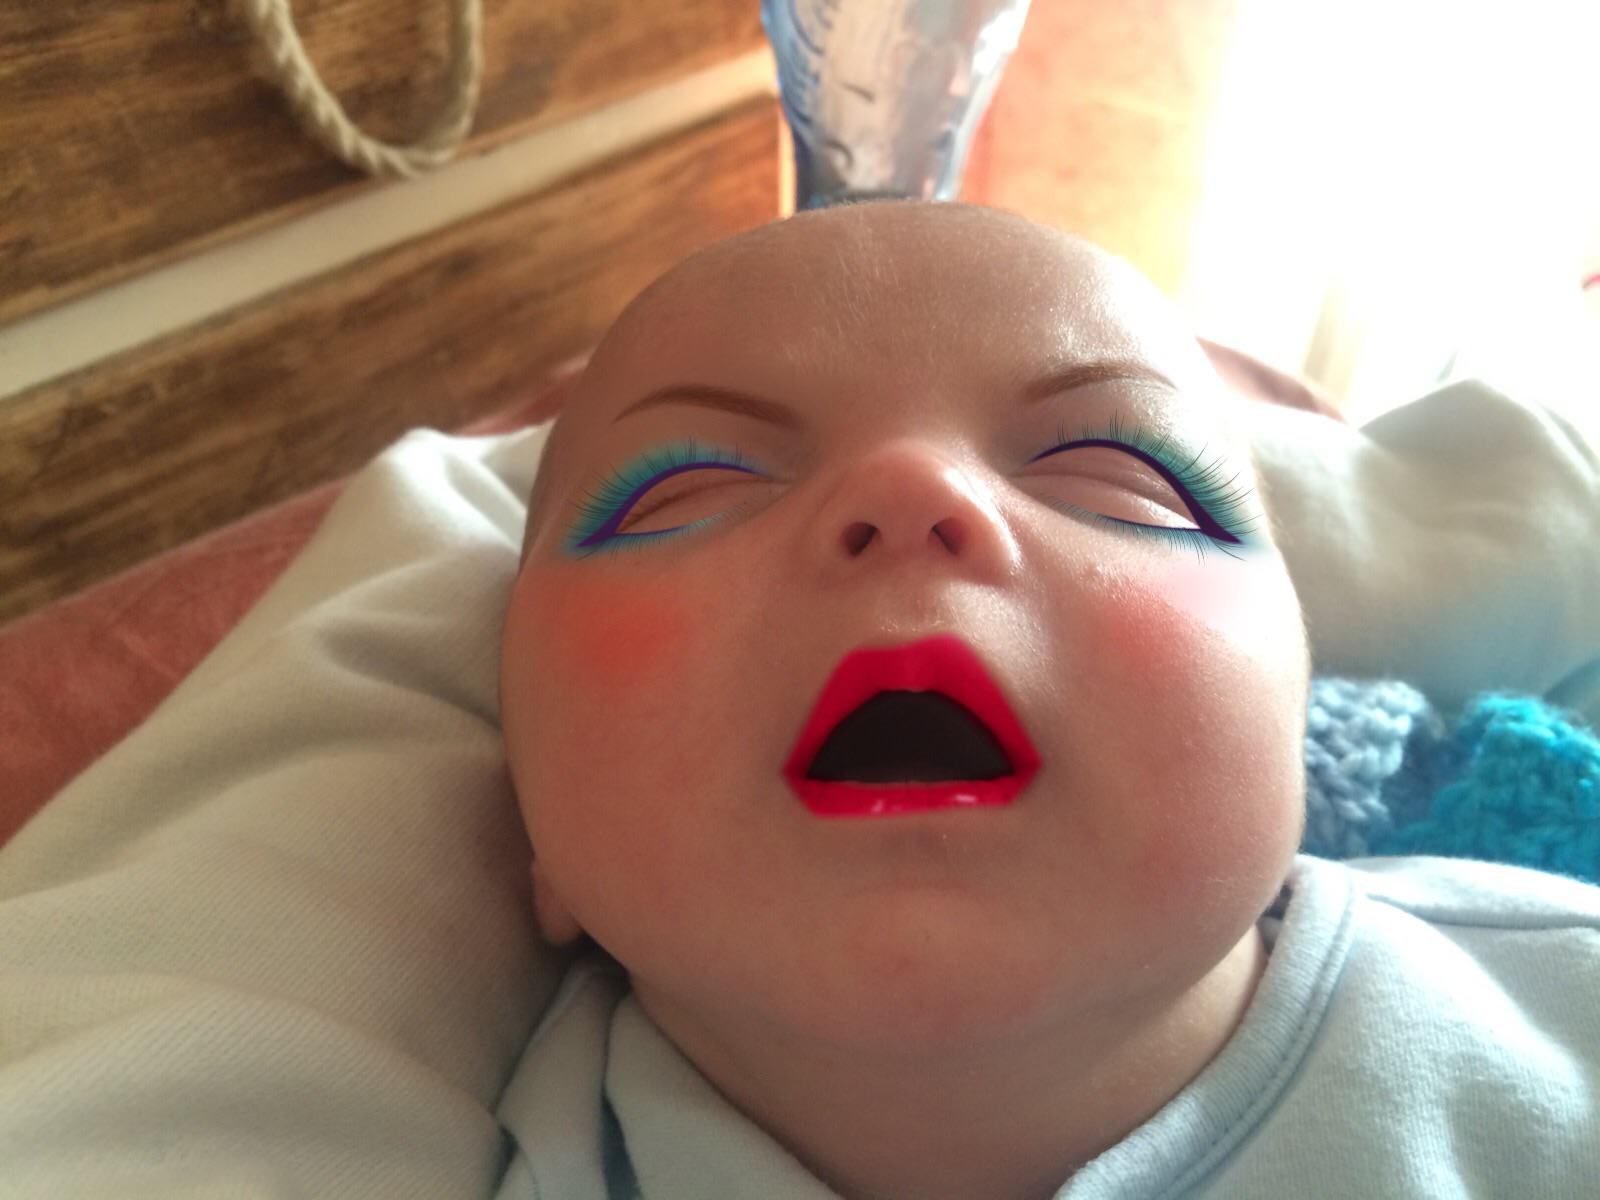 This Dad Used A Make Up App On His 7 Week Old Son 4